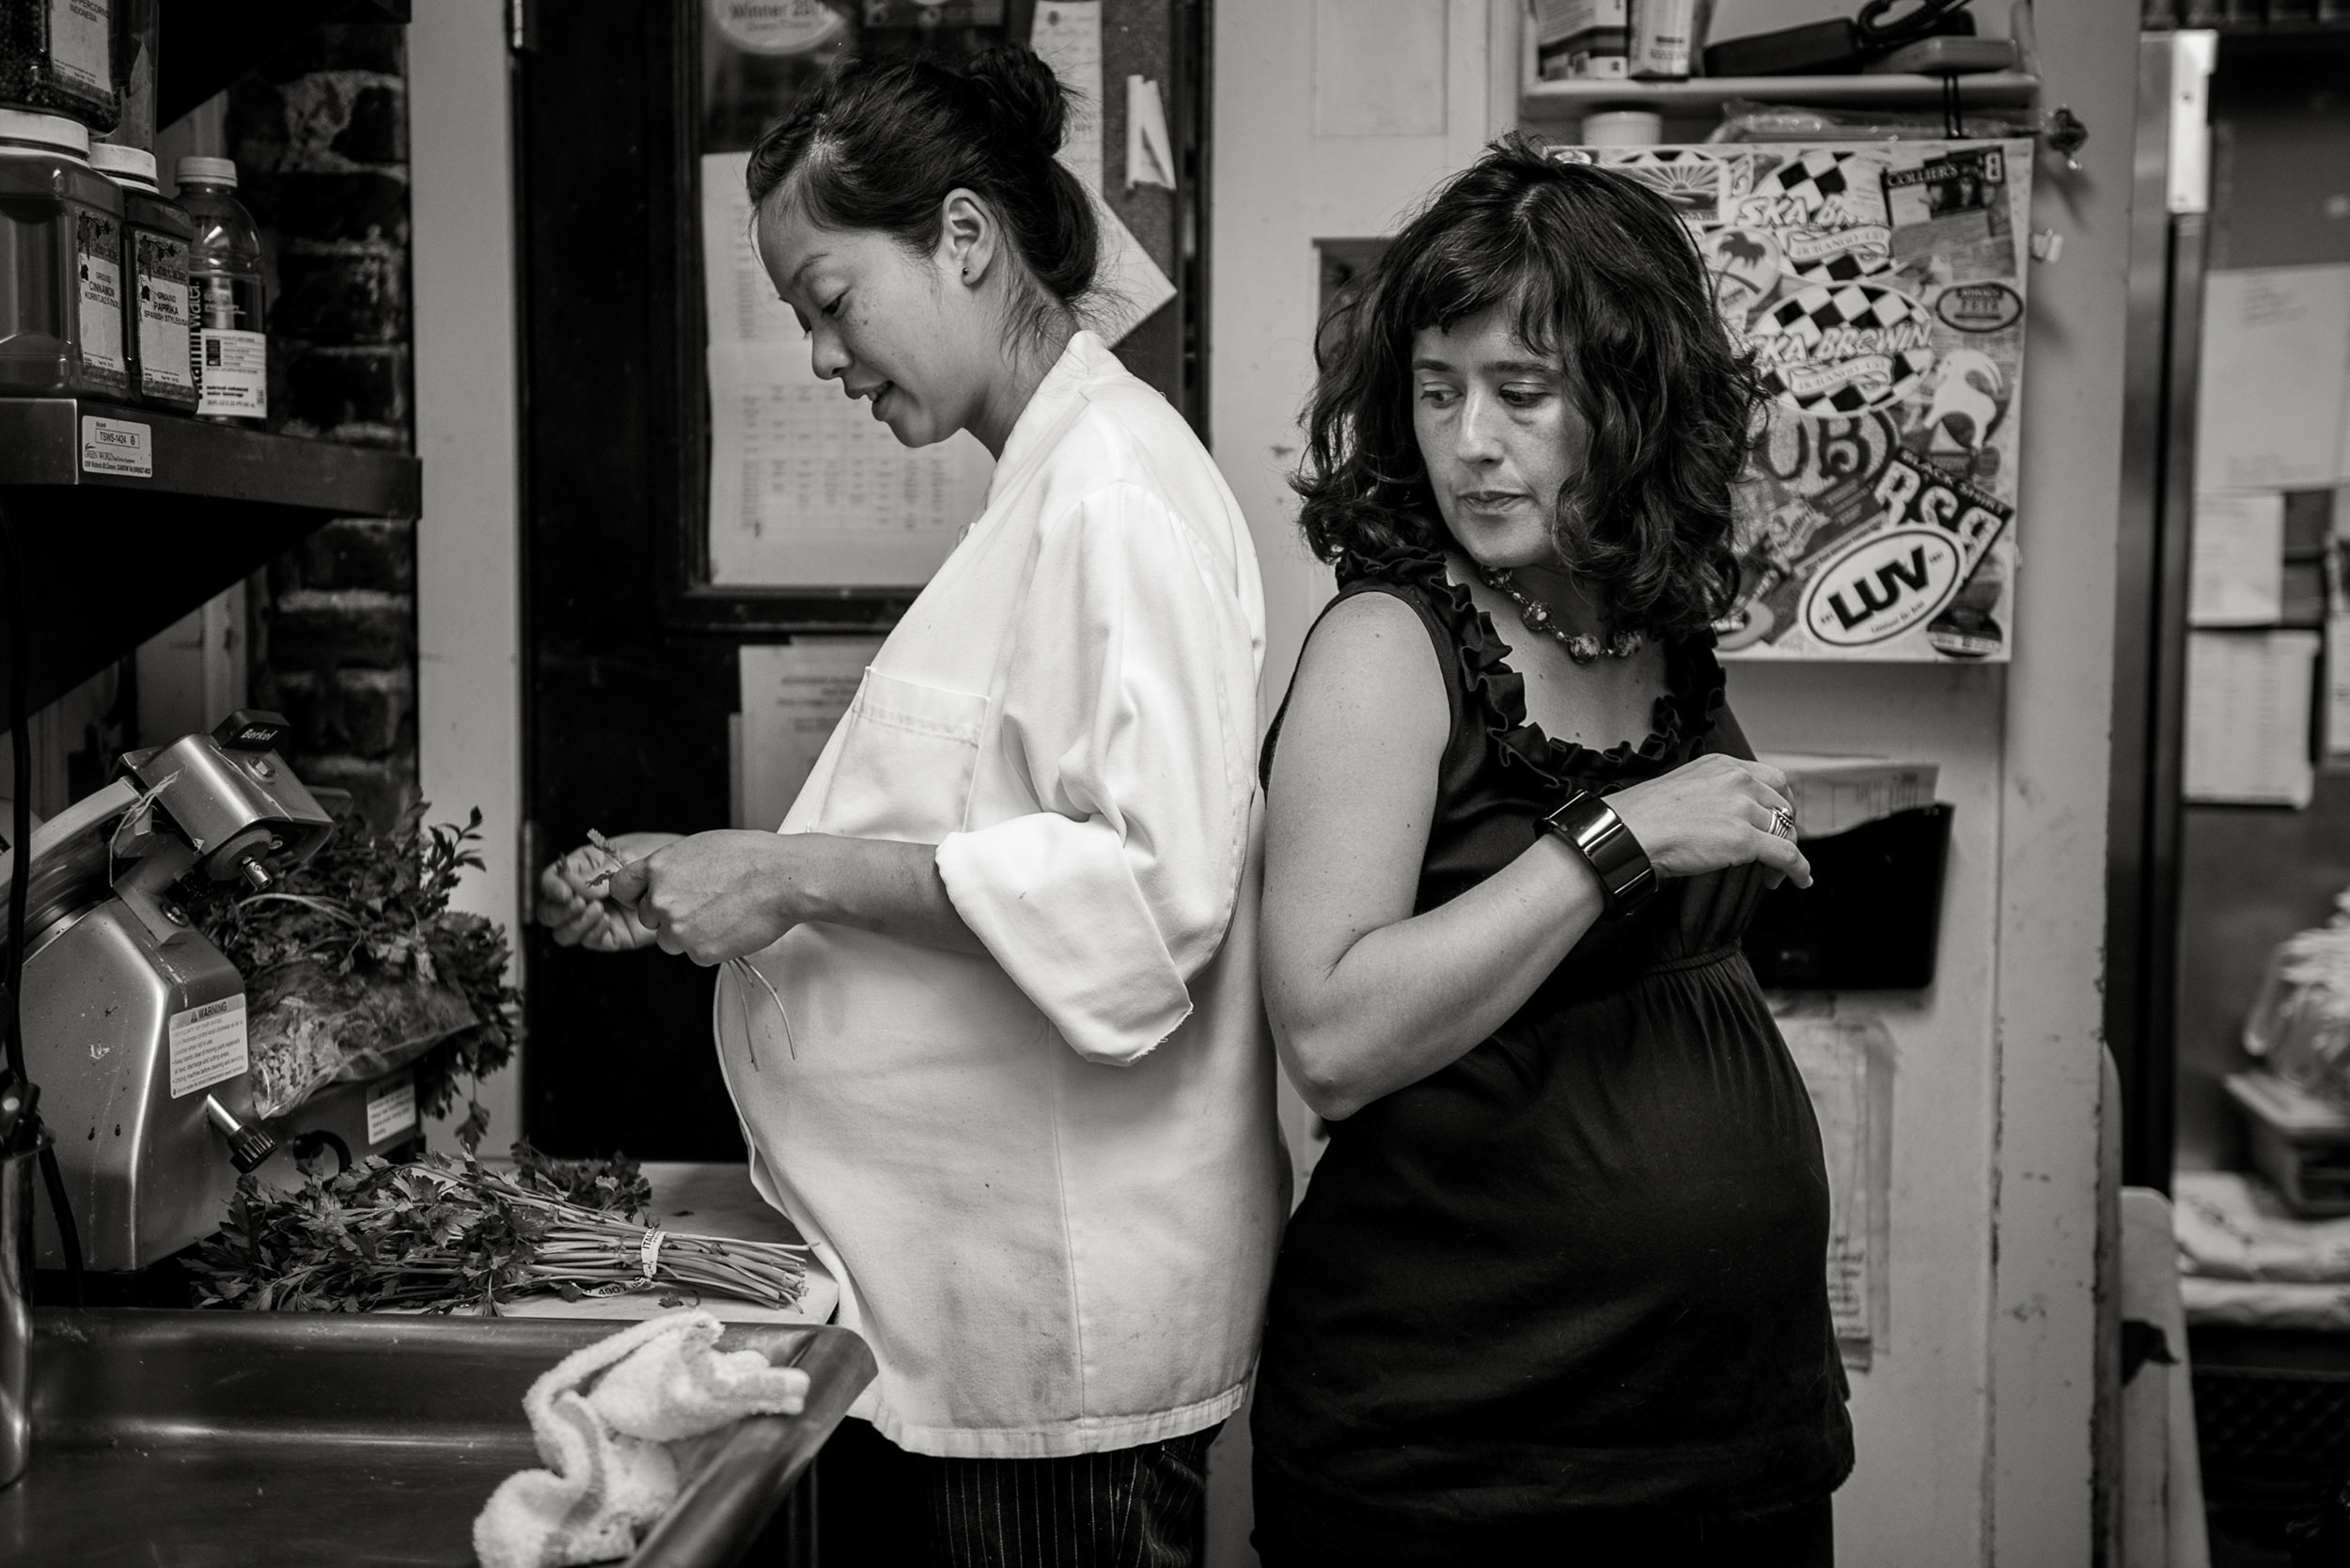 TIFFANY, COOK, AND STEPHANIE, RESTAURANT OWNER - 2012, © Carl Bower